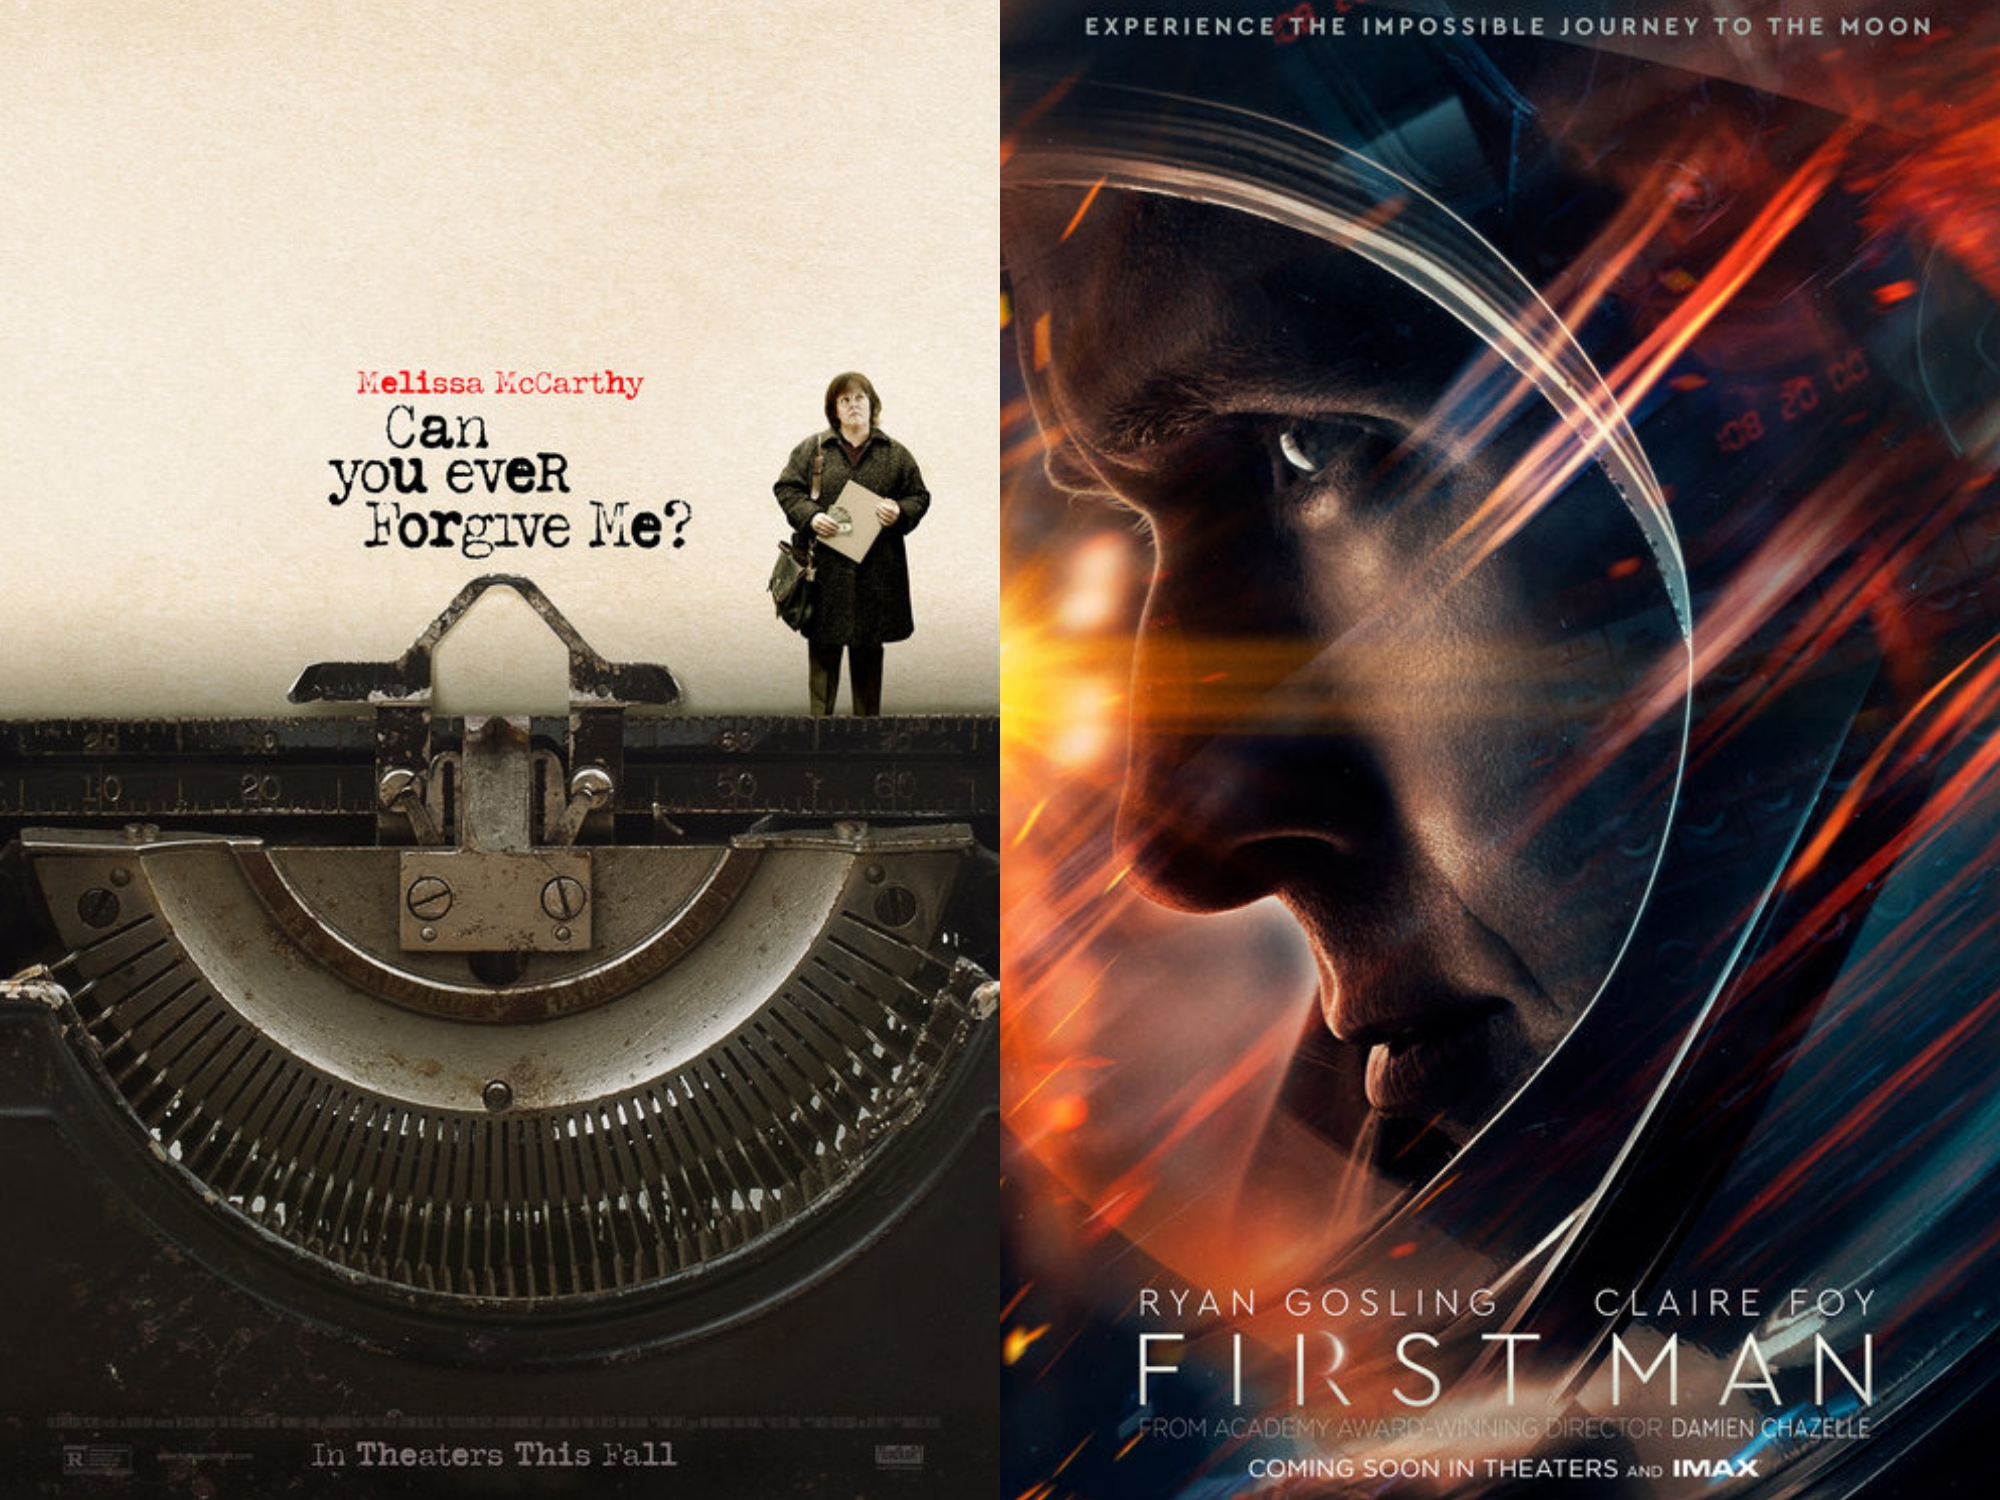 Who Could Spoil: - Since 2009, The Academy has allowed for ten Best Picture nominees, but they haven't used all ten slots since 2010. If they were to put a tenth film in here, my guess would be either Can You Ever Forgive Me? or First Man. The former will undoubtedly receive noms for Best Actress and Best Adapted Screenplay, while the latter will likely have a noticeable presence in the technical categories (Sound Editing, Cinematography, Score, Production Design). Neither film has really been in the conversation for Best Picture in a while, but if voters are watching for other categories, they may decide to stick it onto their Best Picture ballot as well.